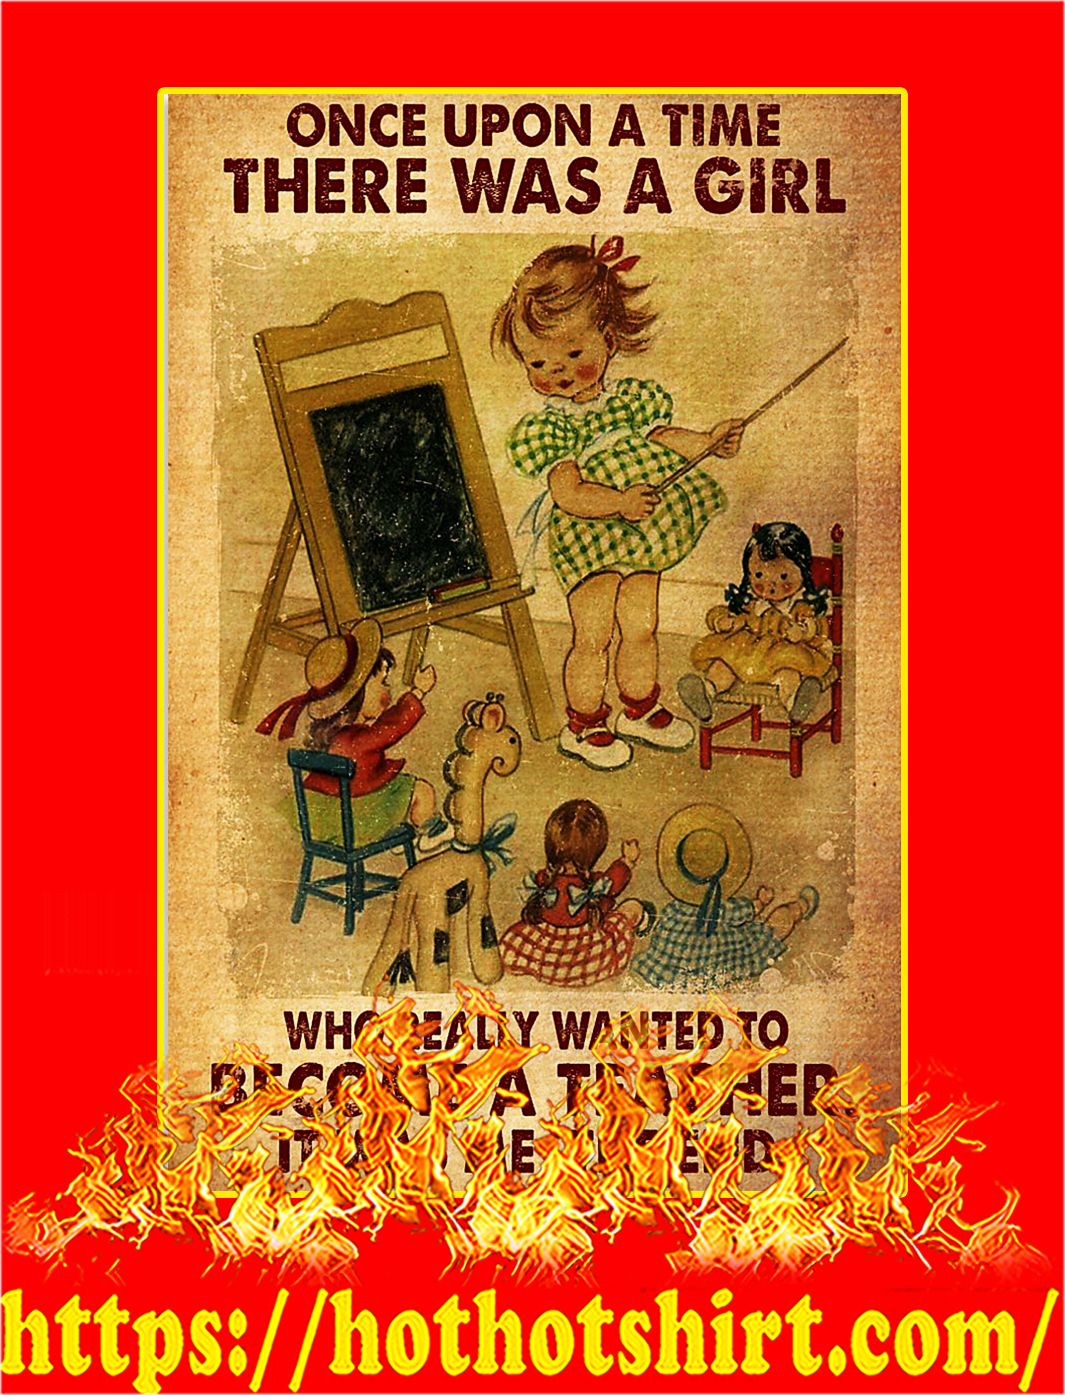 There was a girl who really wanted to teacher poster - A3